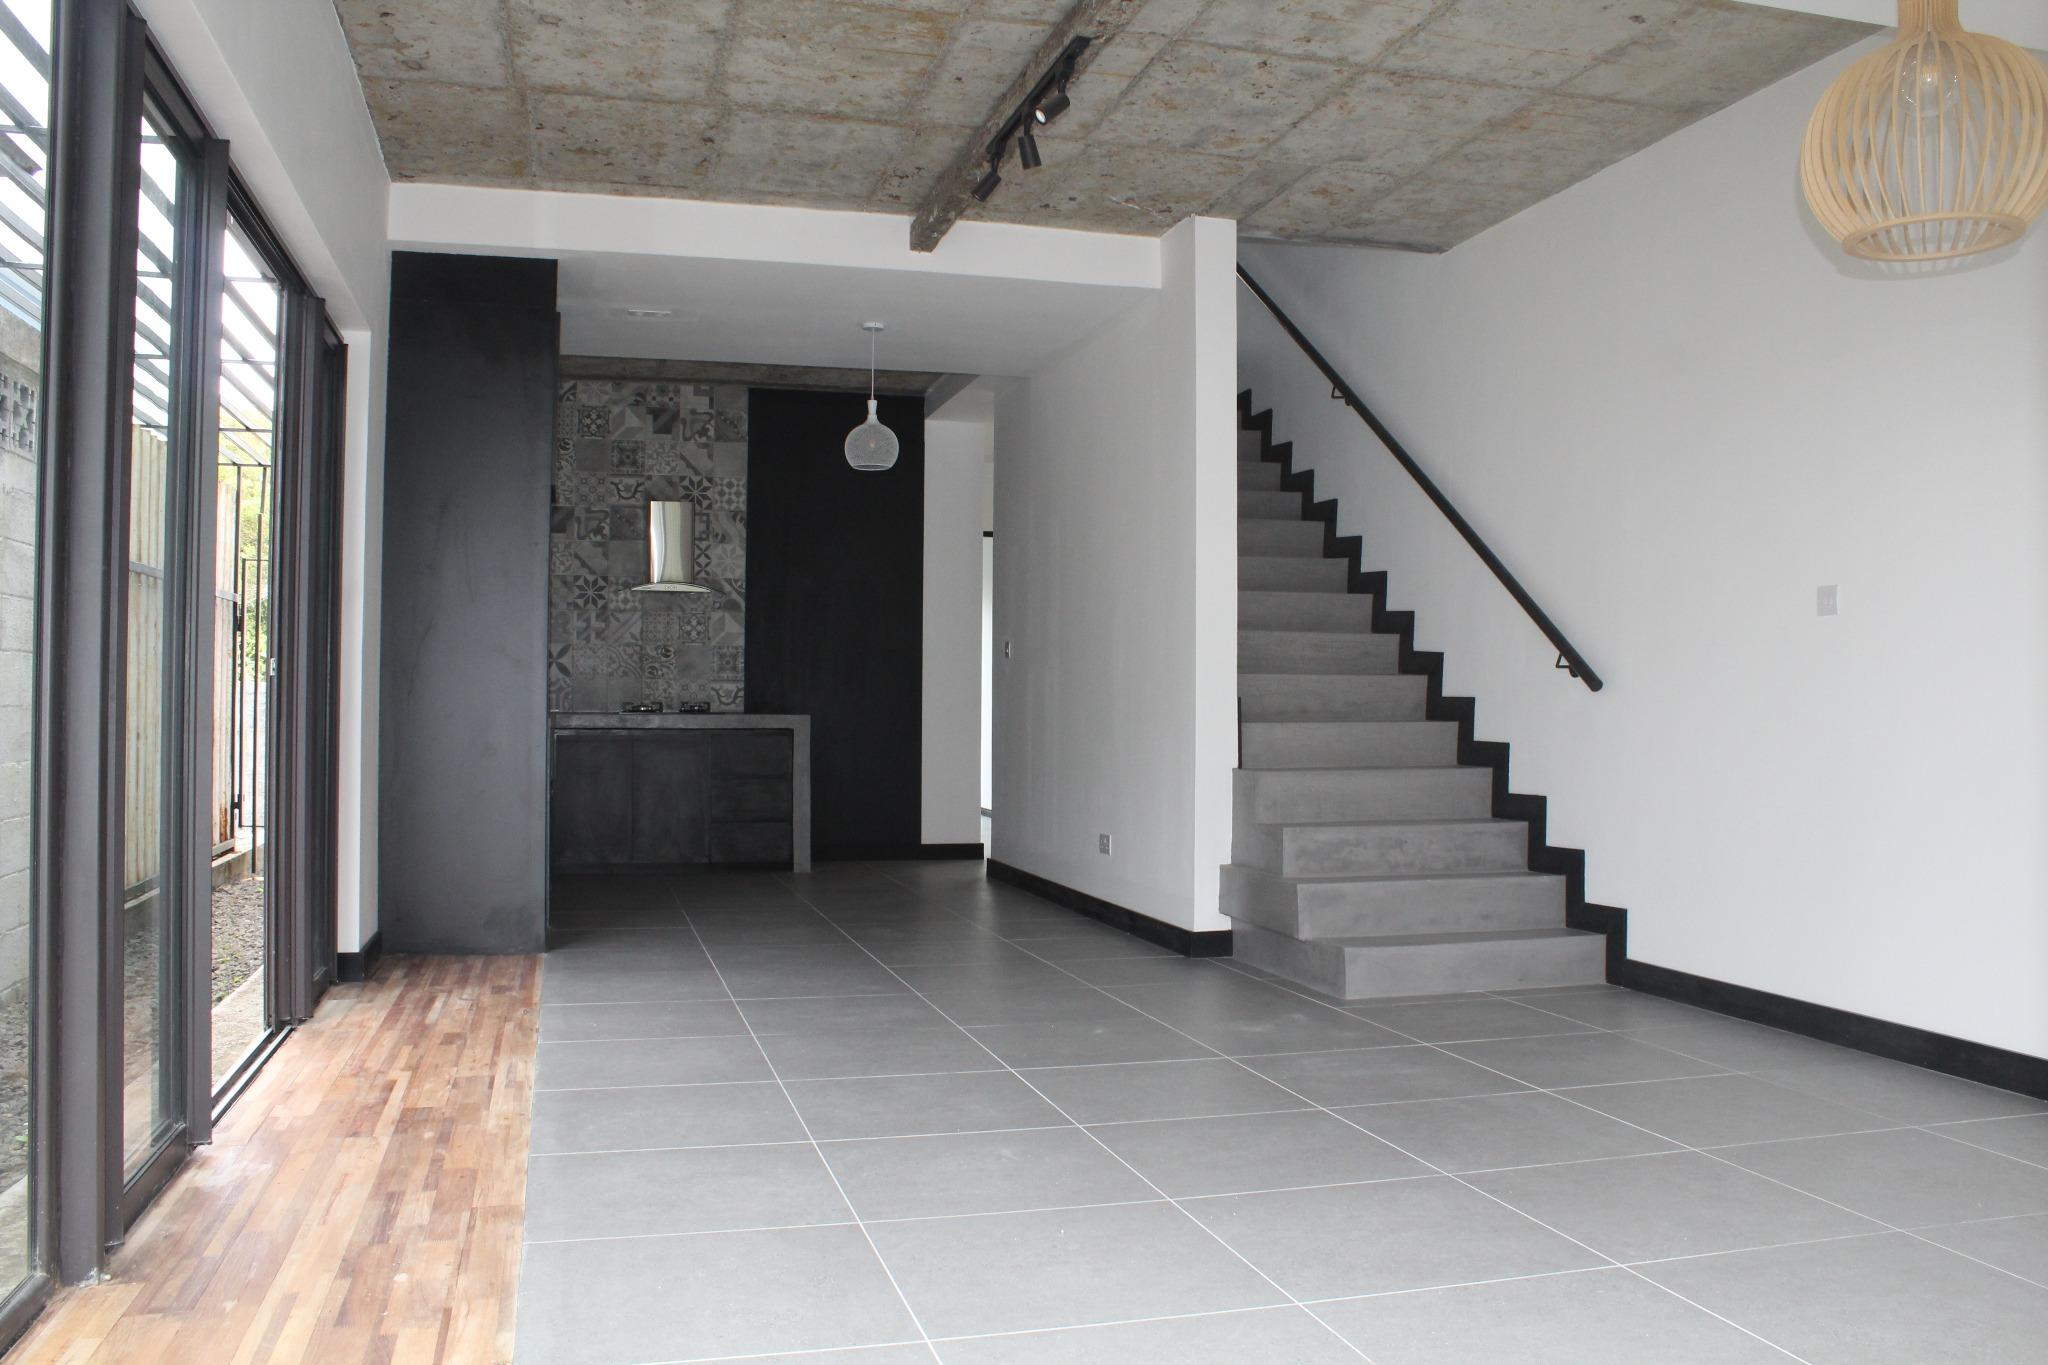 FOR SALE – Beautiful unfurnished Townhouse of 123 m2 in Floréal.